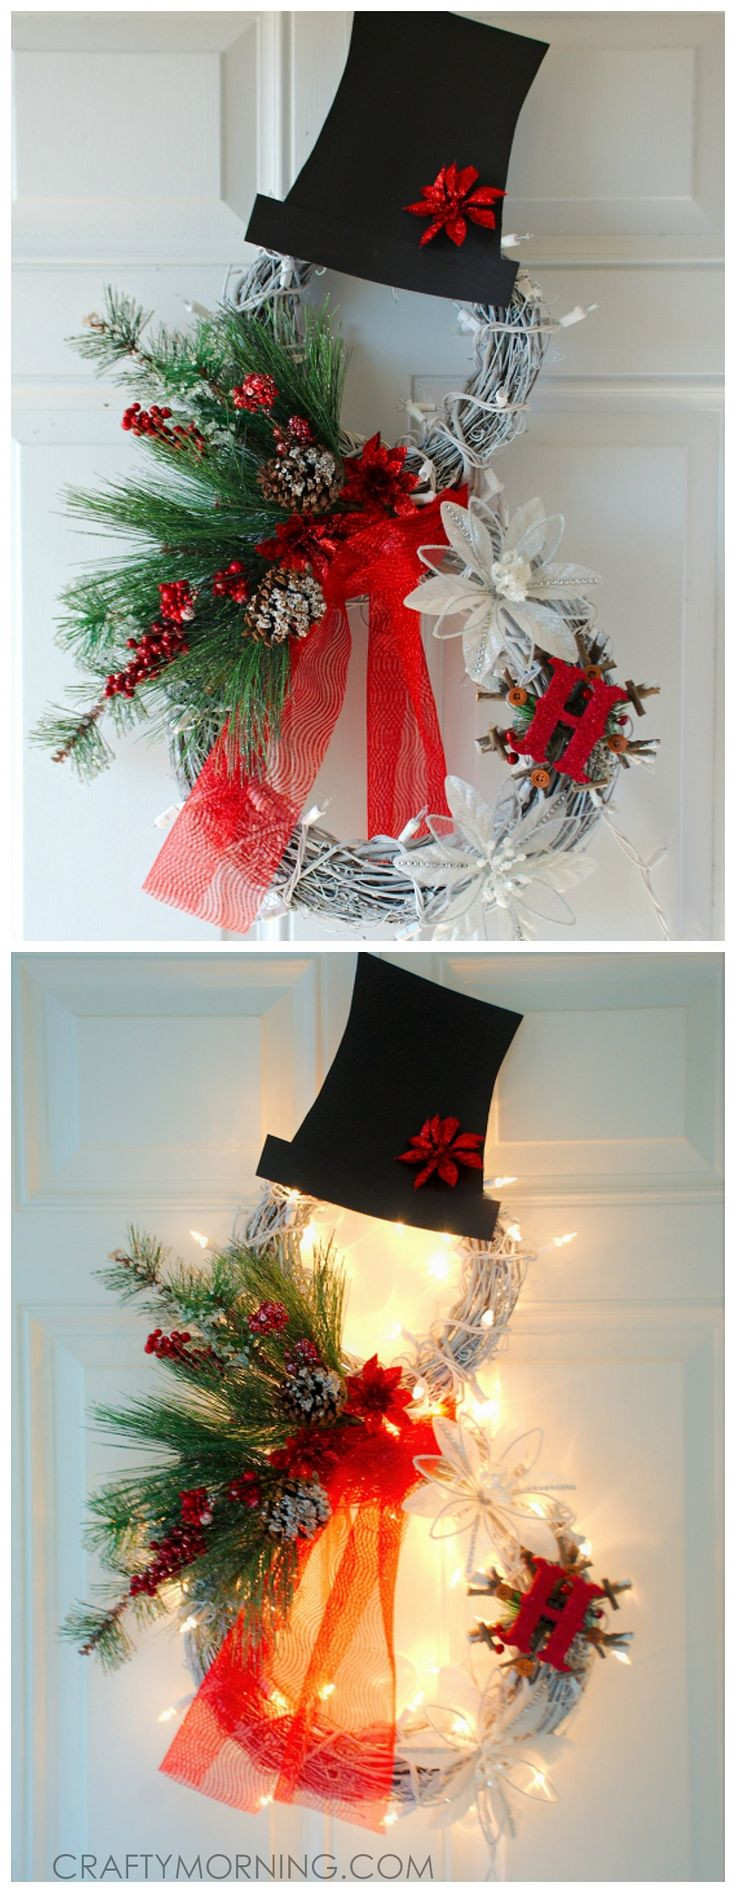 Best ideas about Pinterest Christmas DIY . Save or Pin 25 best ideas about Christmas Wreaths on Pinterest Now.